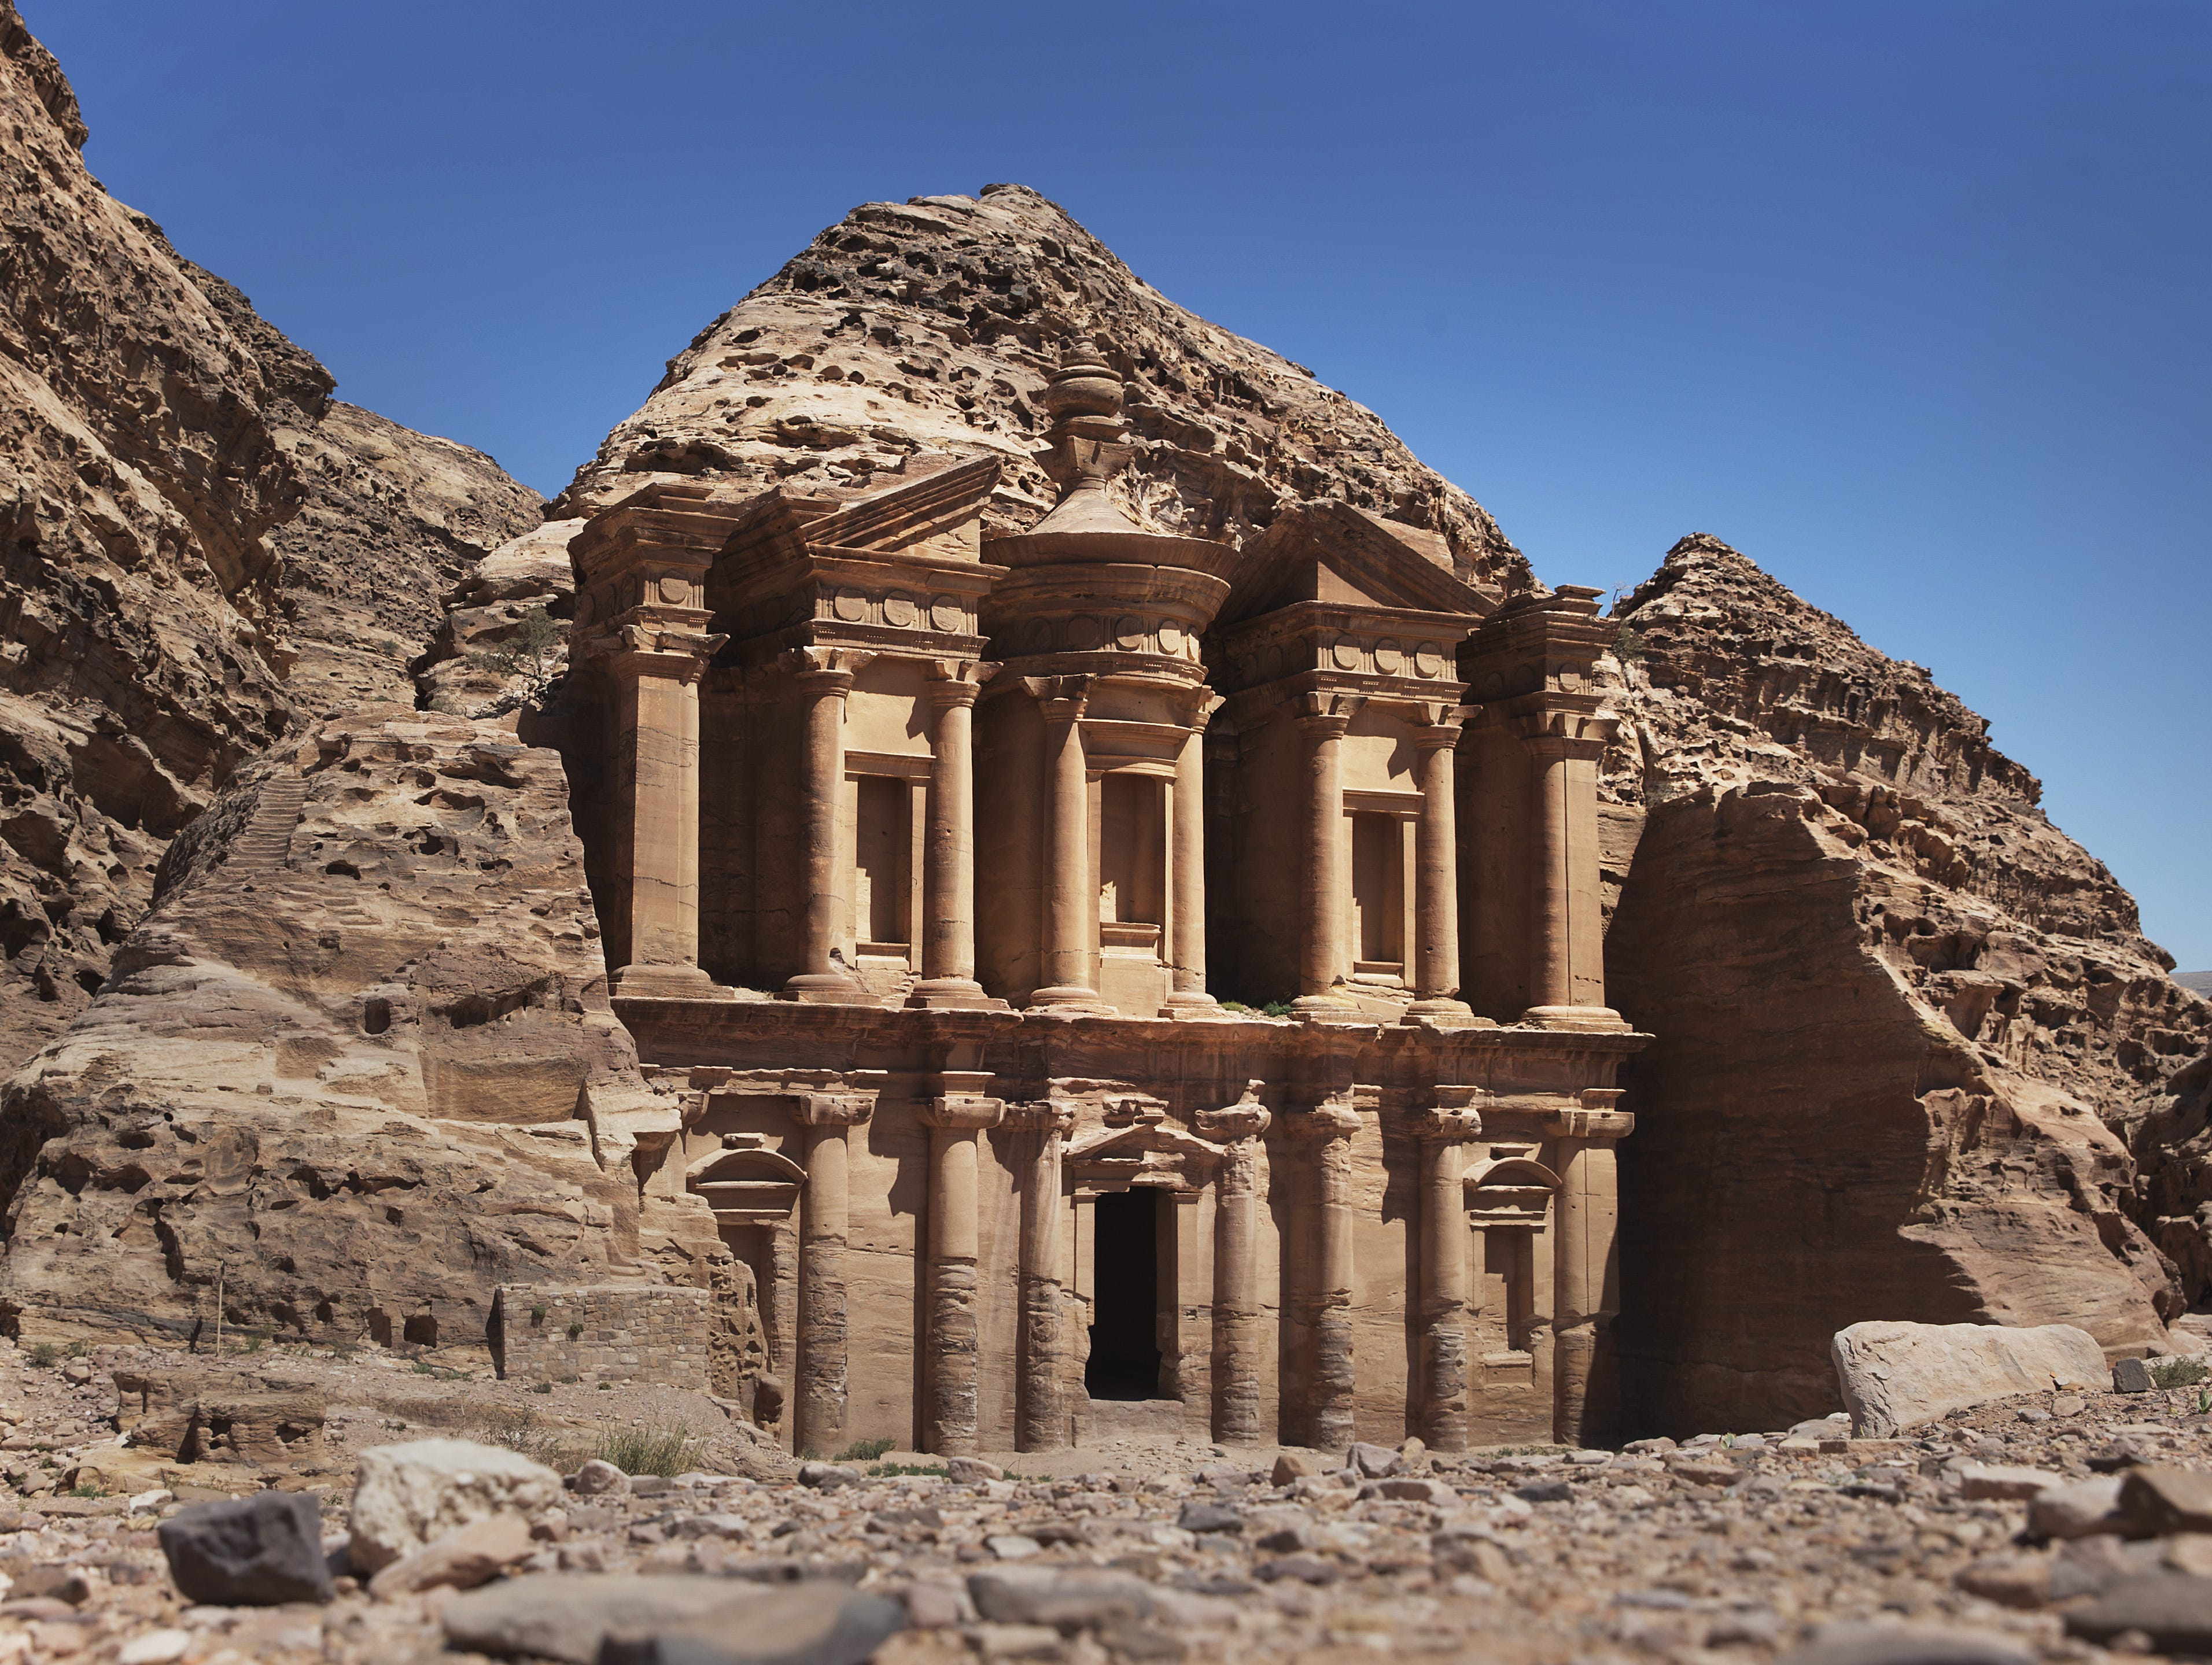 Jordan is a more stable part of the Middle East that attracts visitors for its ancient sites. This is the Monastery building in the ancient city of Petra.